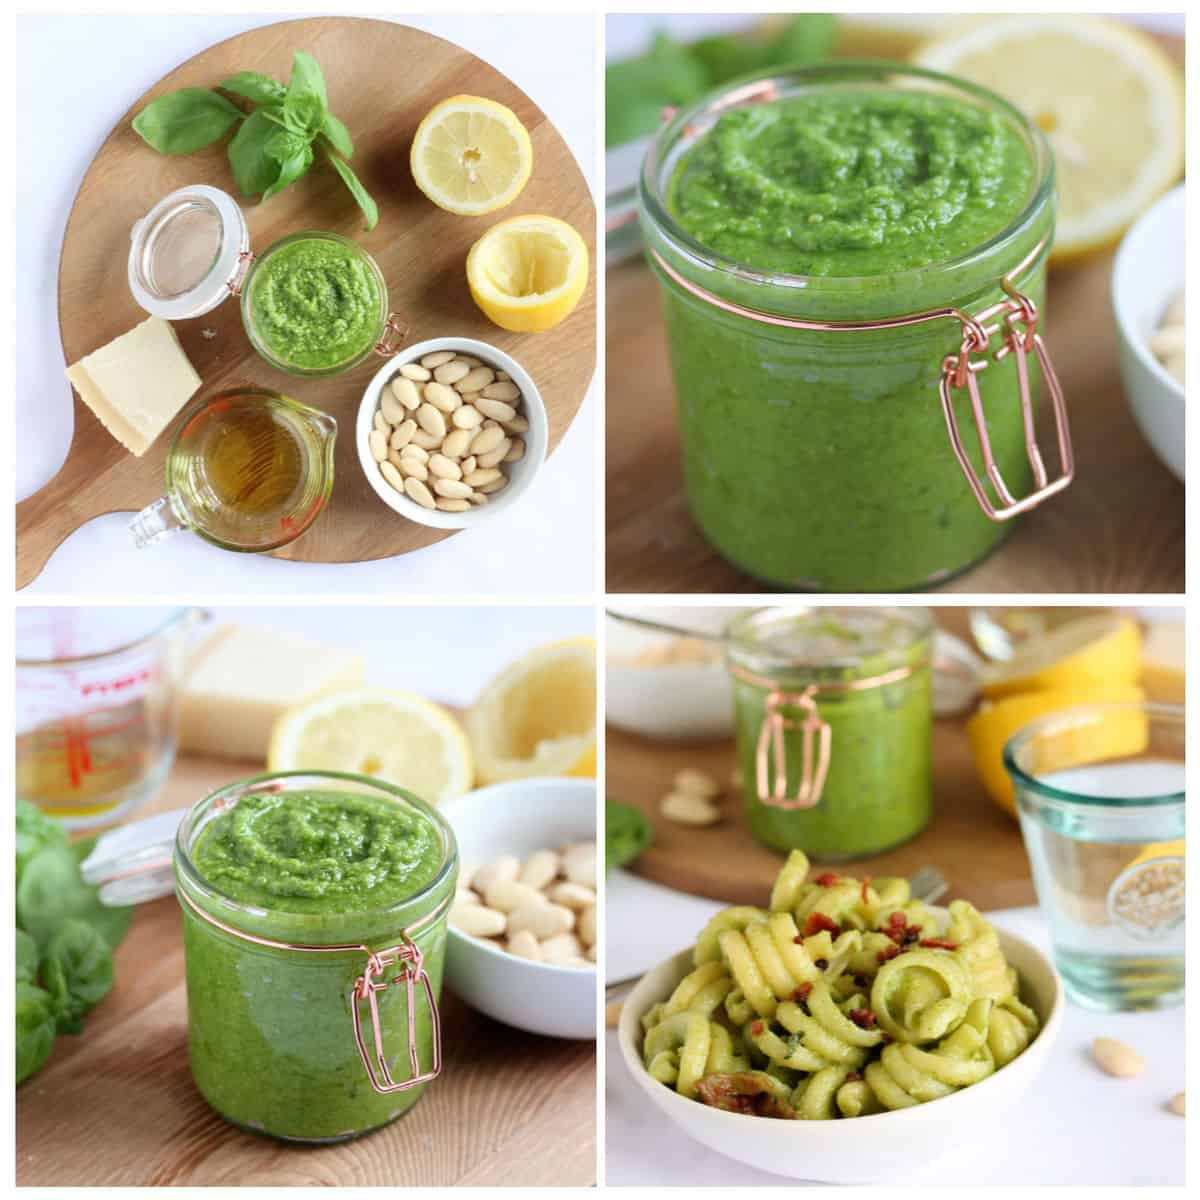 Step by step photo instructions for making pesto pasta